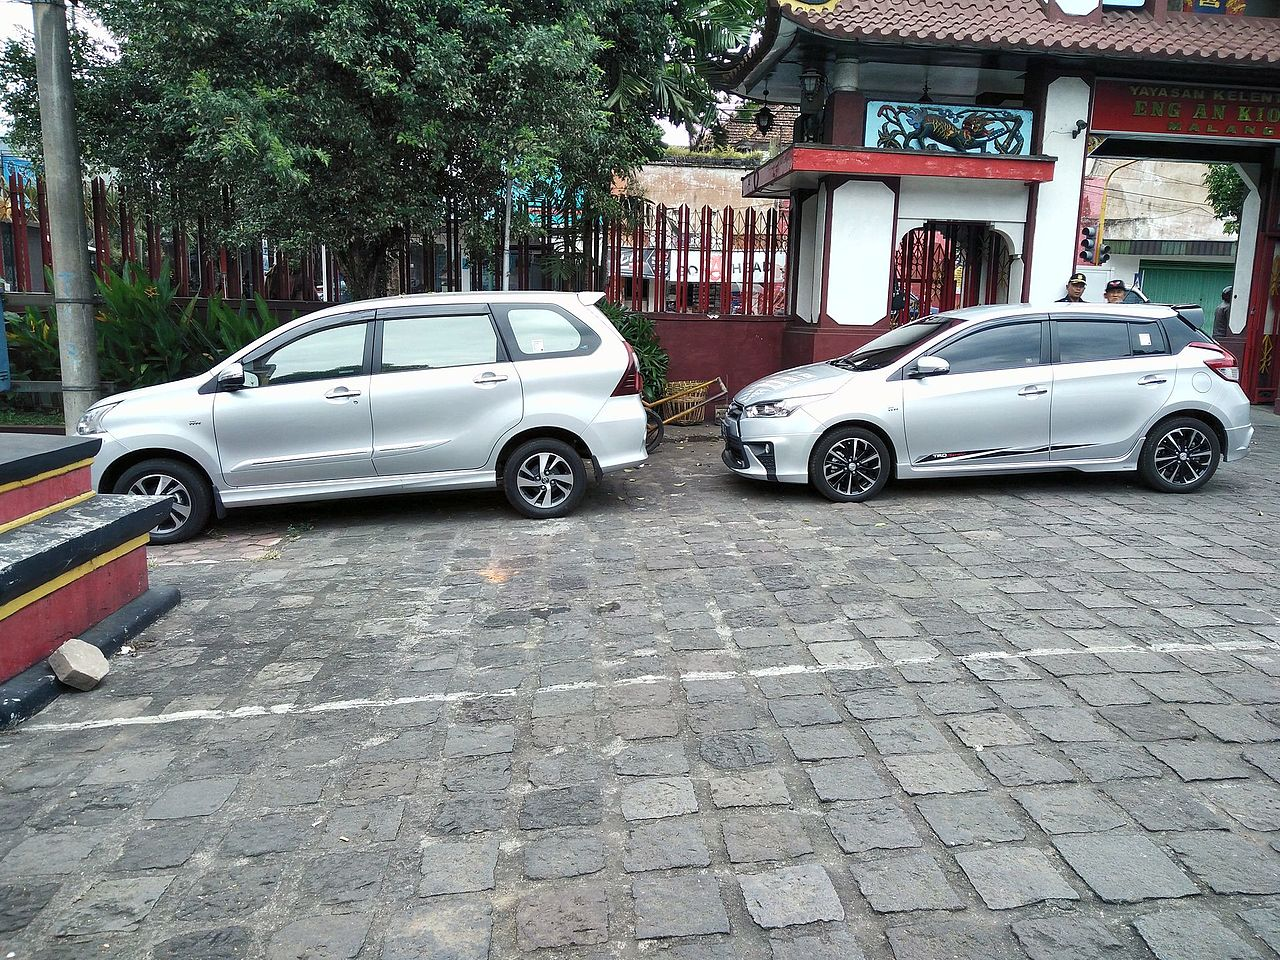 toyota yaris trd sportivo 2017 grand new avanza 1.3 g m/t 2016 file 1 5 veloz and